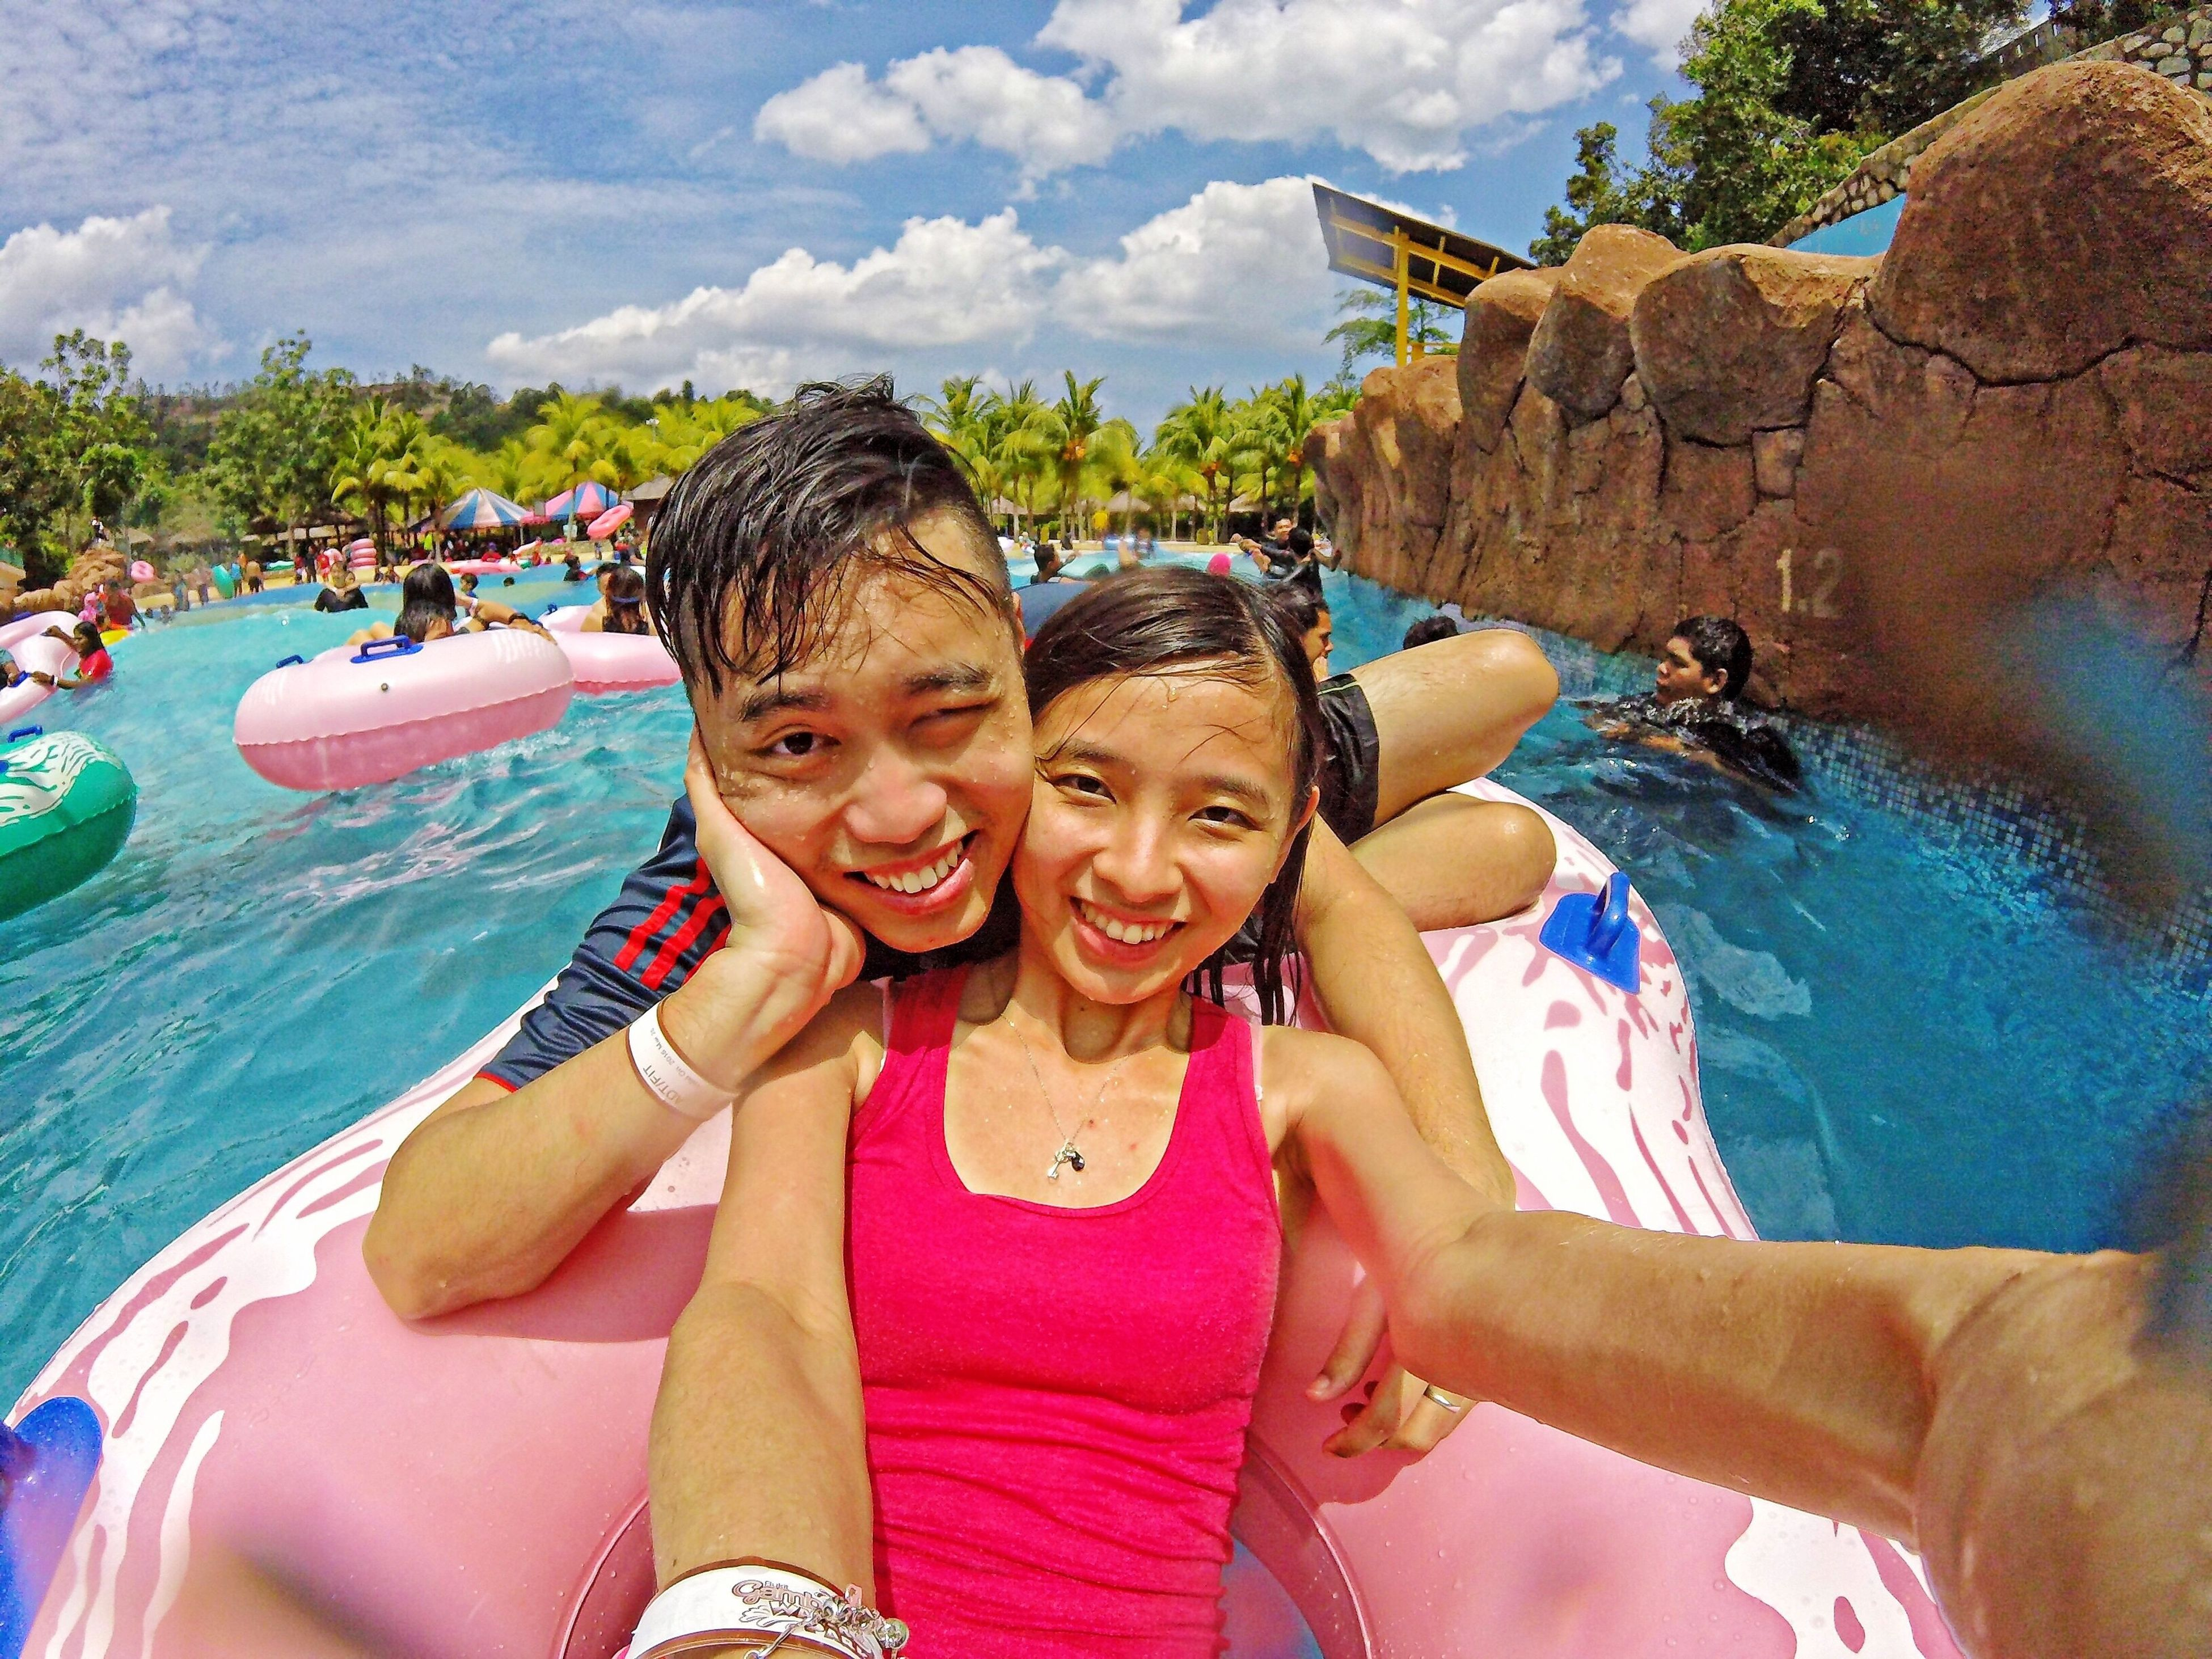 lifestyles, person, leisure activity, looking at camera, portrait, happiness, smiling, vacations, young adult, water, enjoyment, togetherness, front view, fun, sky, casual clothing, young women, bonding, toothy smile